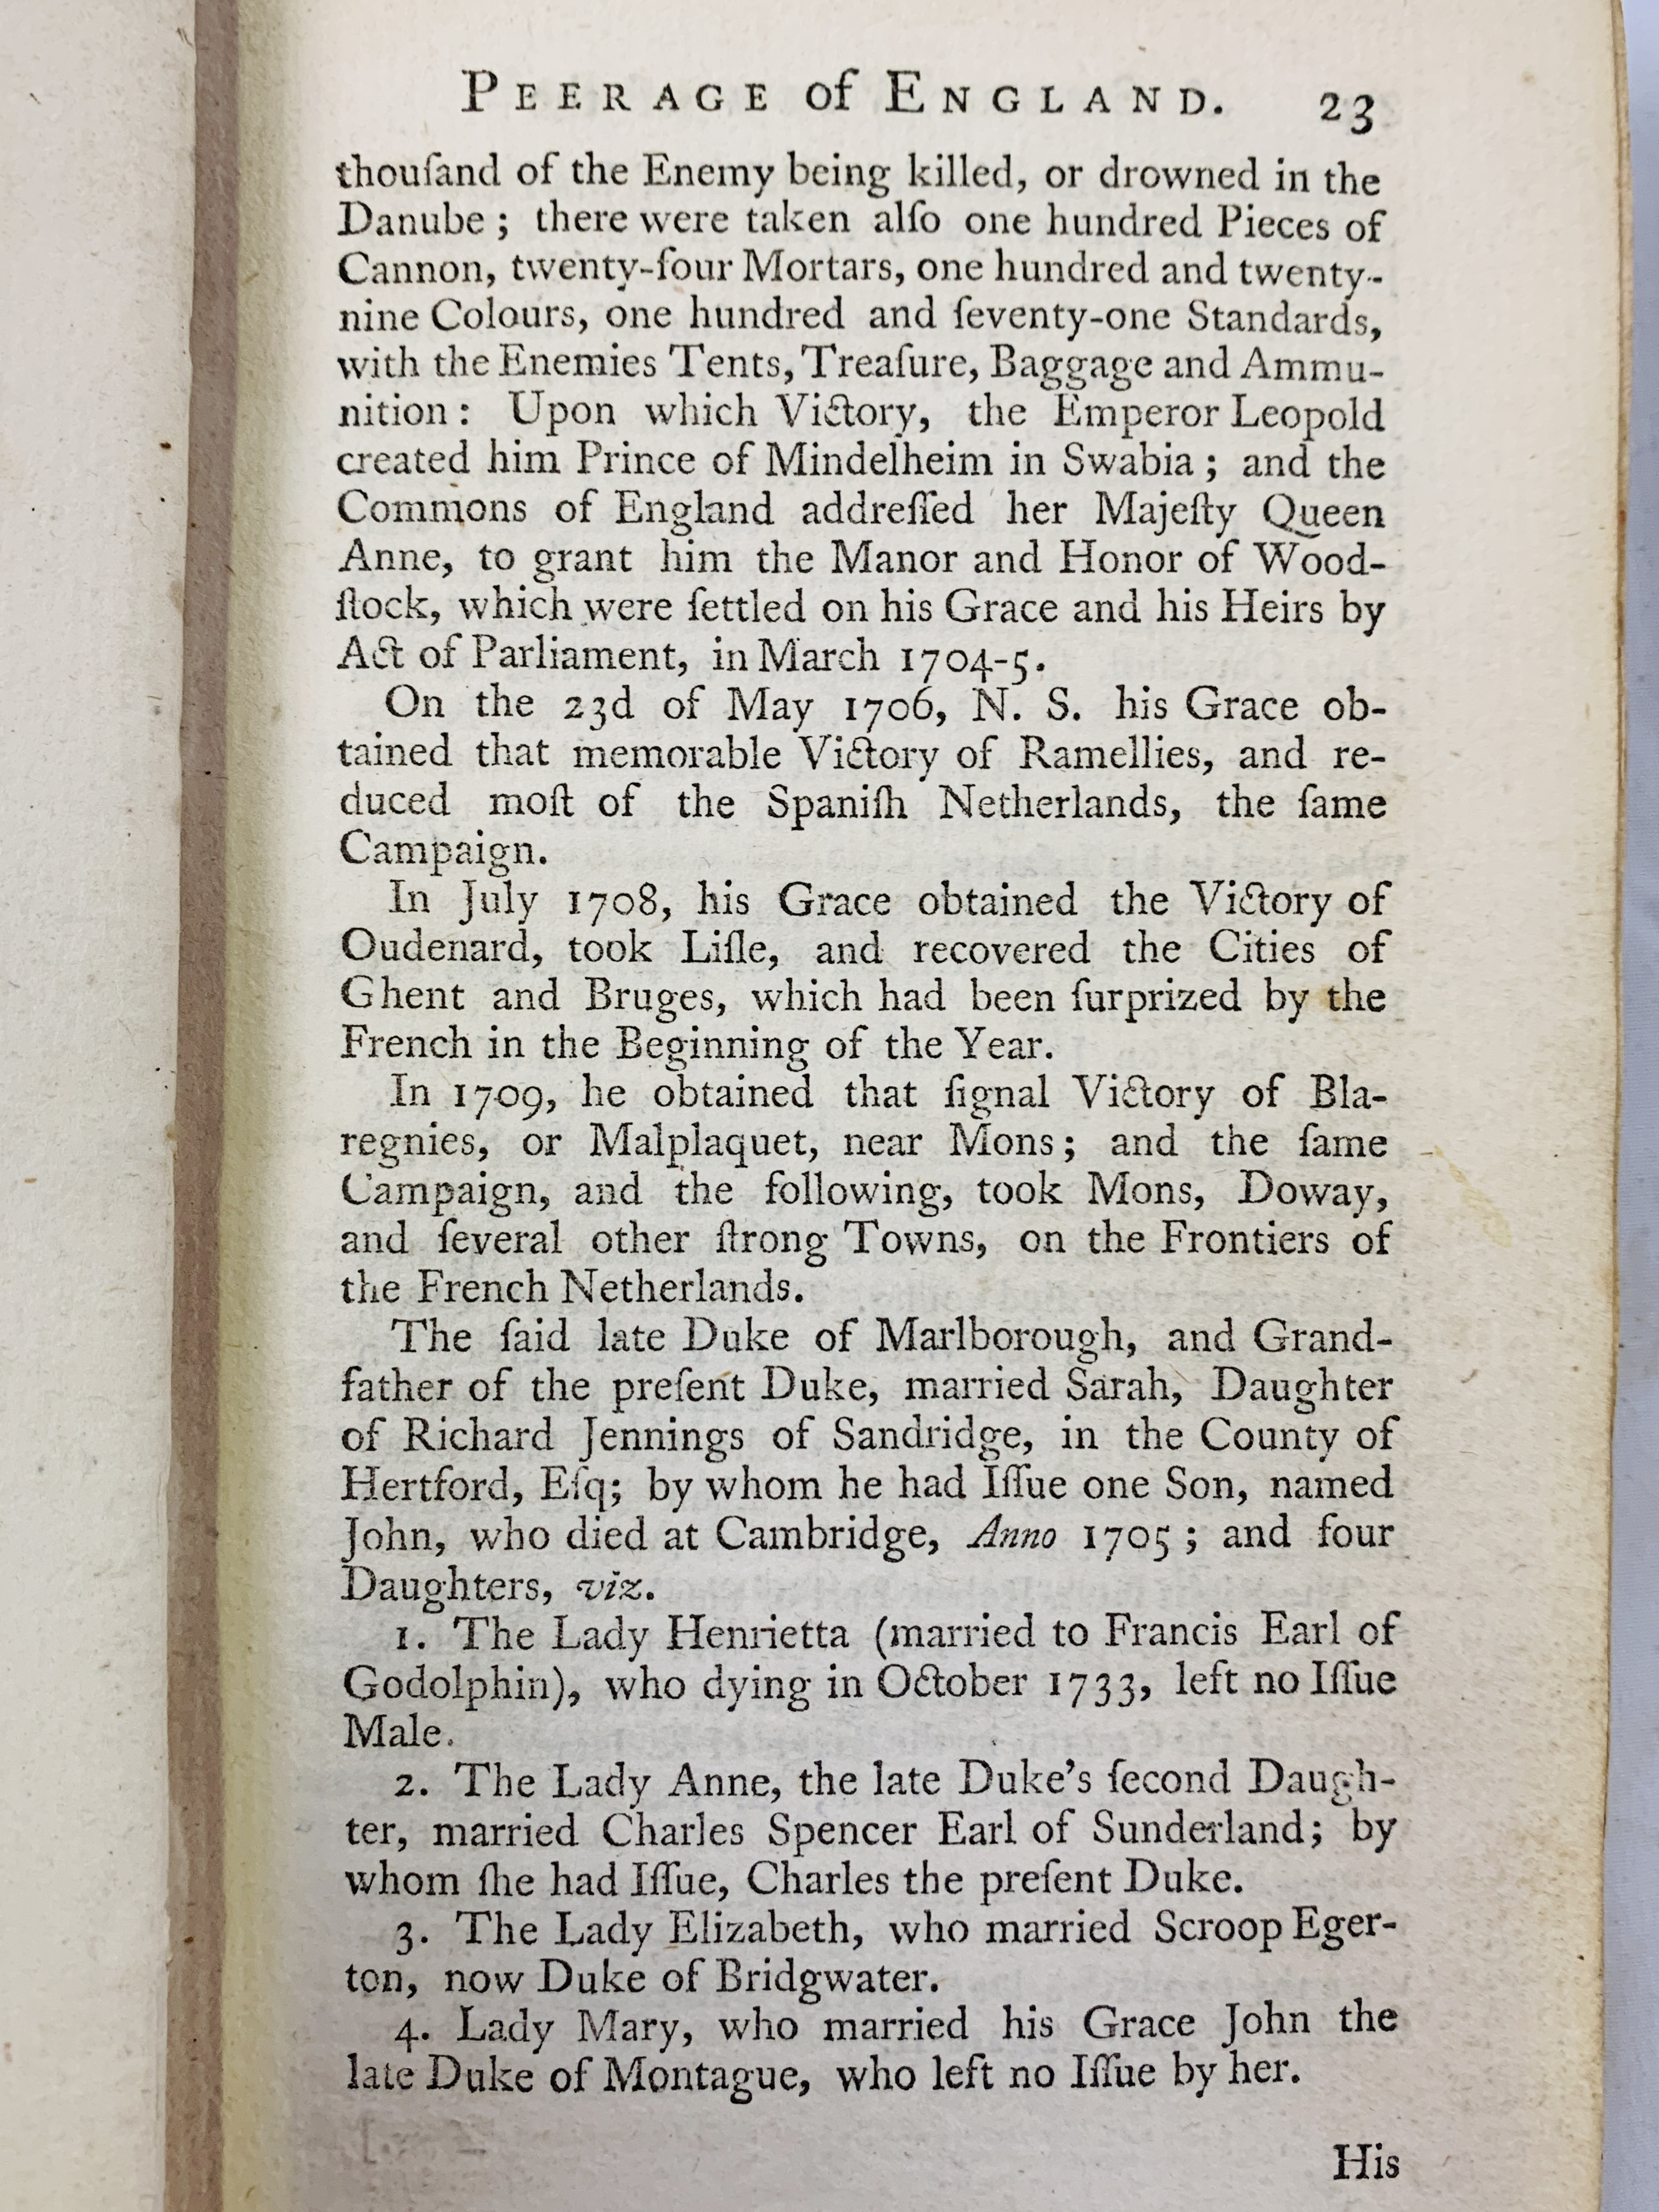 A Short View of the Families of the Present English Nobility, 1758 by Mr Salmon - Image 3 of 4